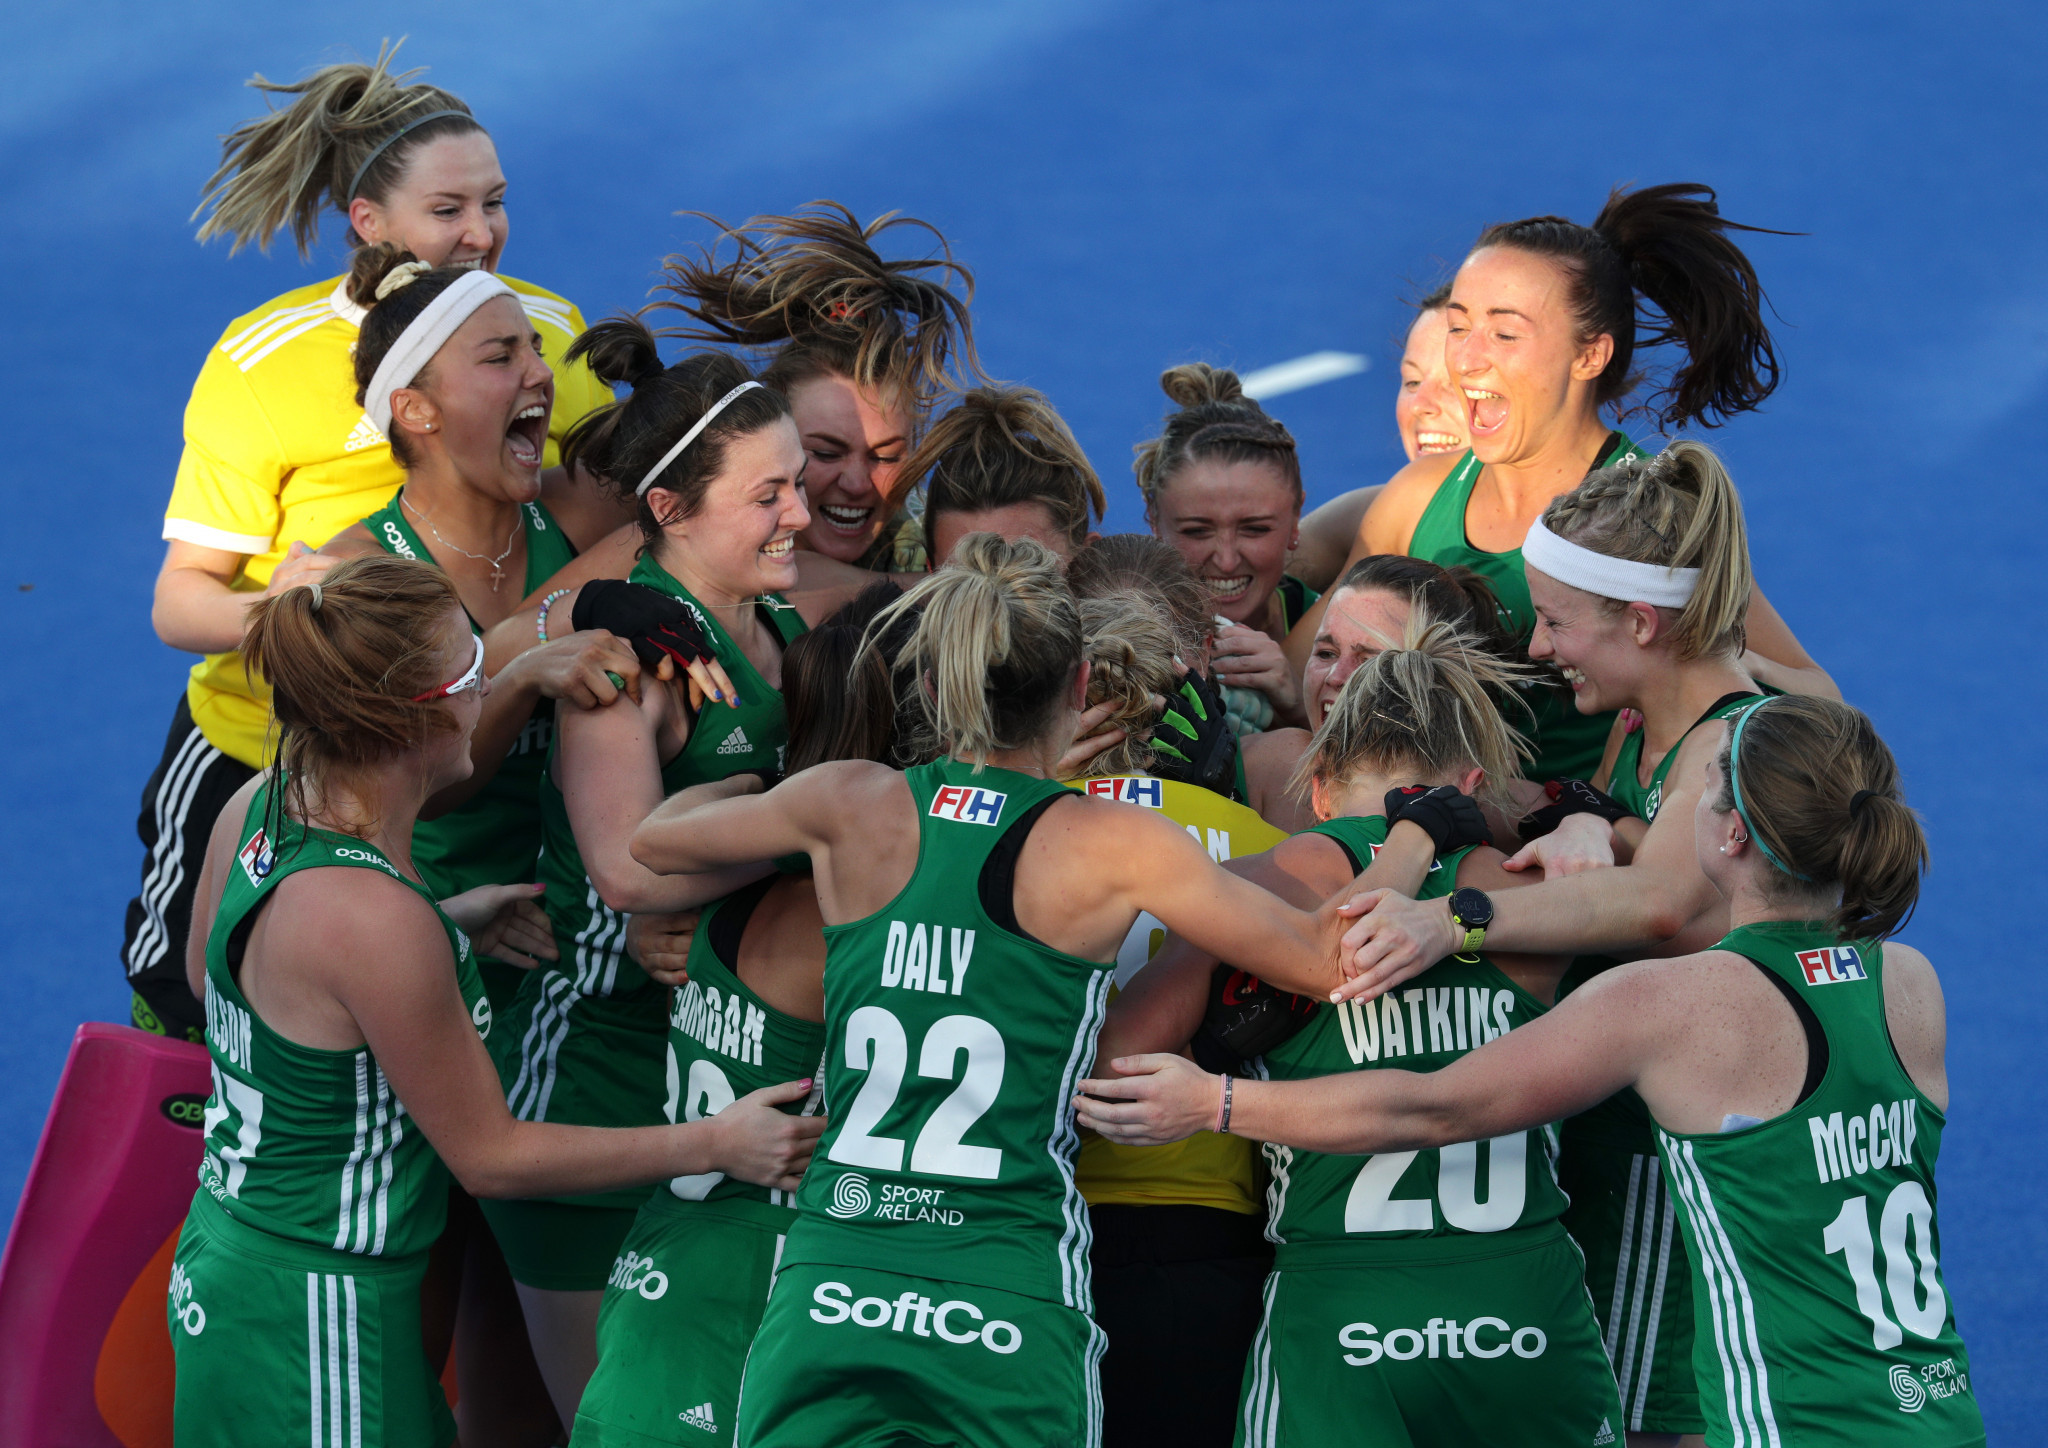 Holders Netherlands too strong for England as Ireland make it to first Women's Hockey World Cup semi-final